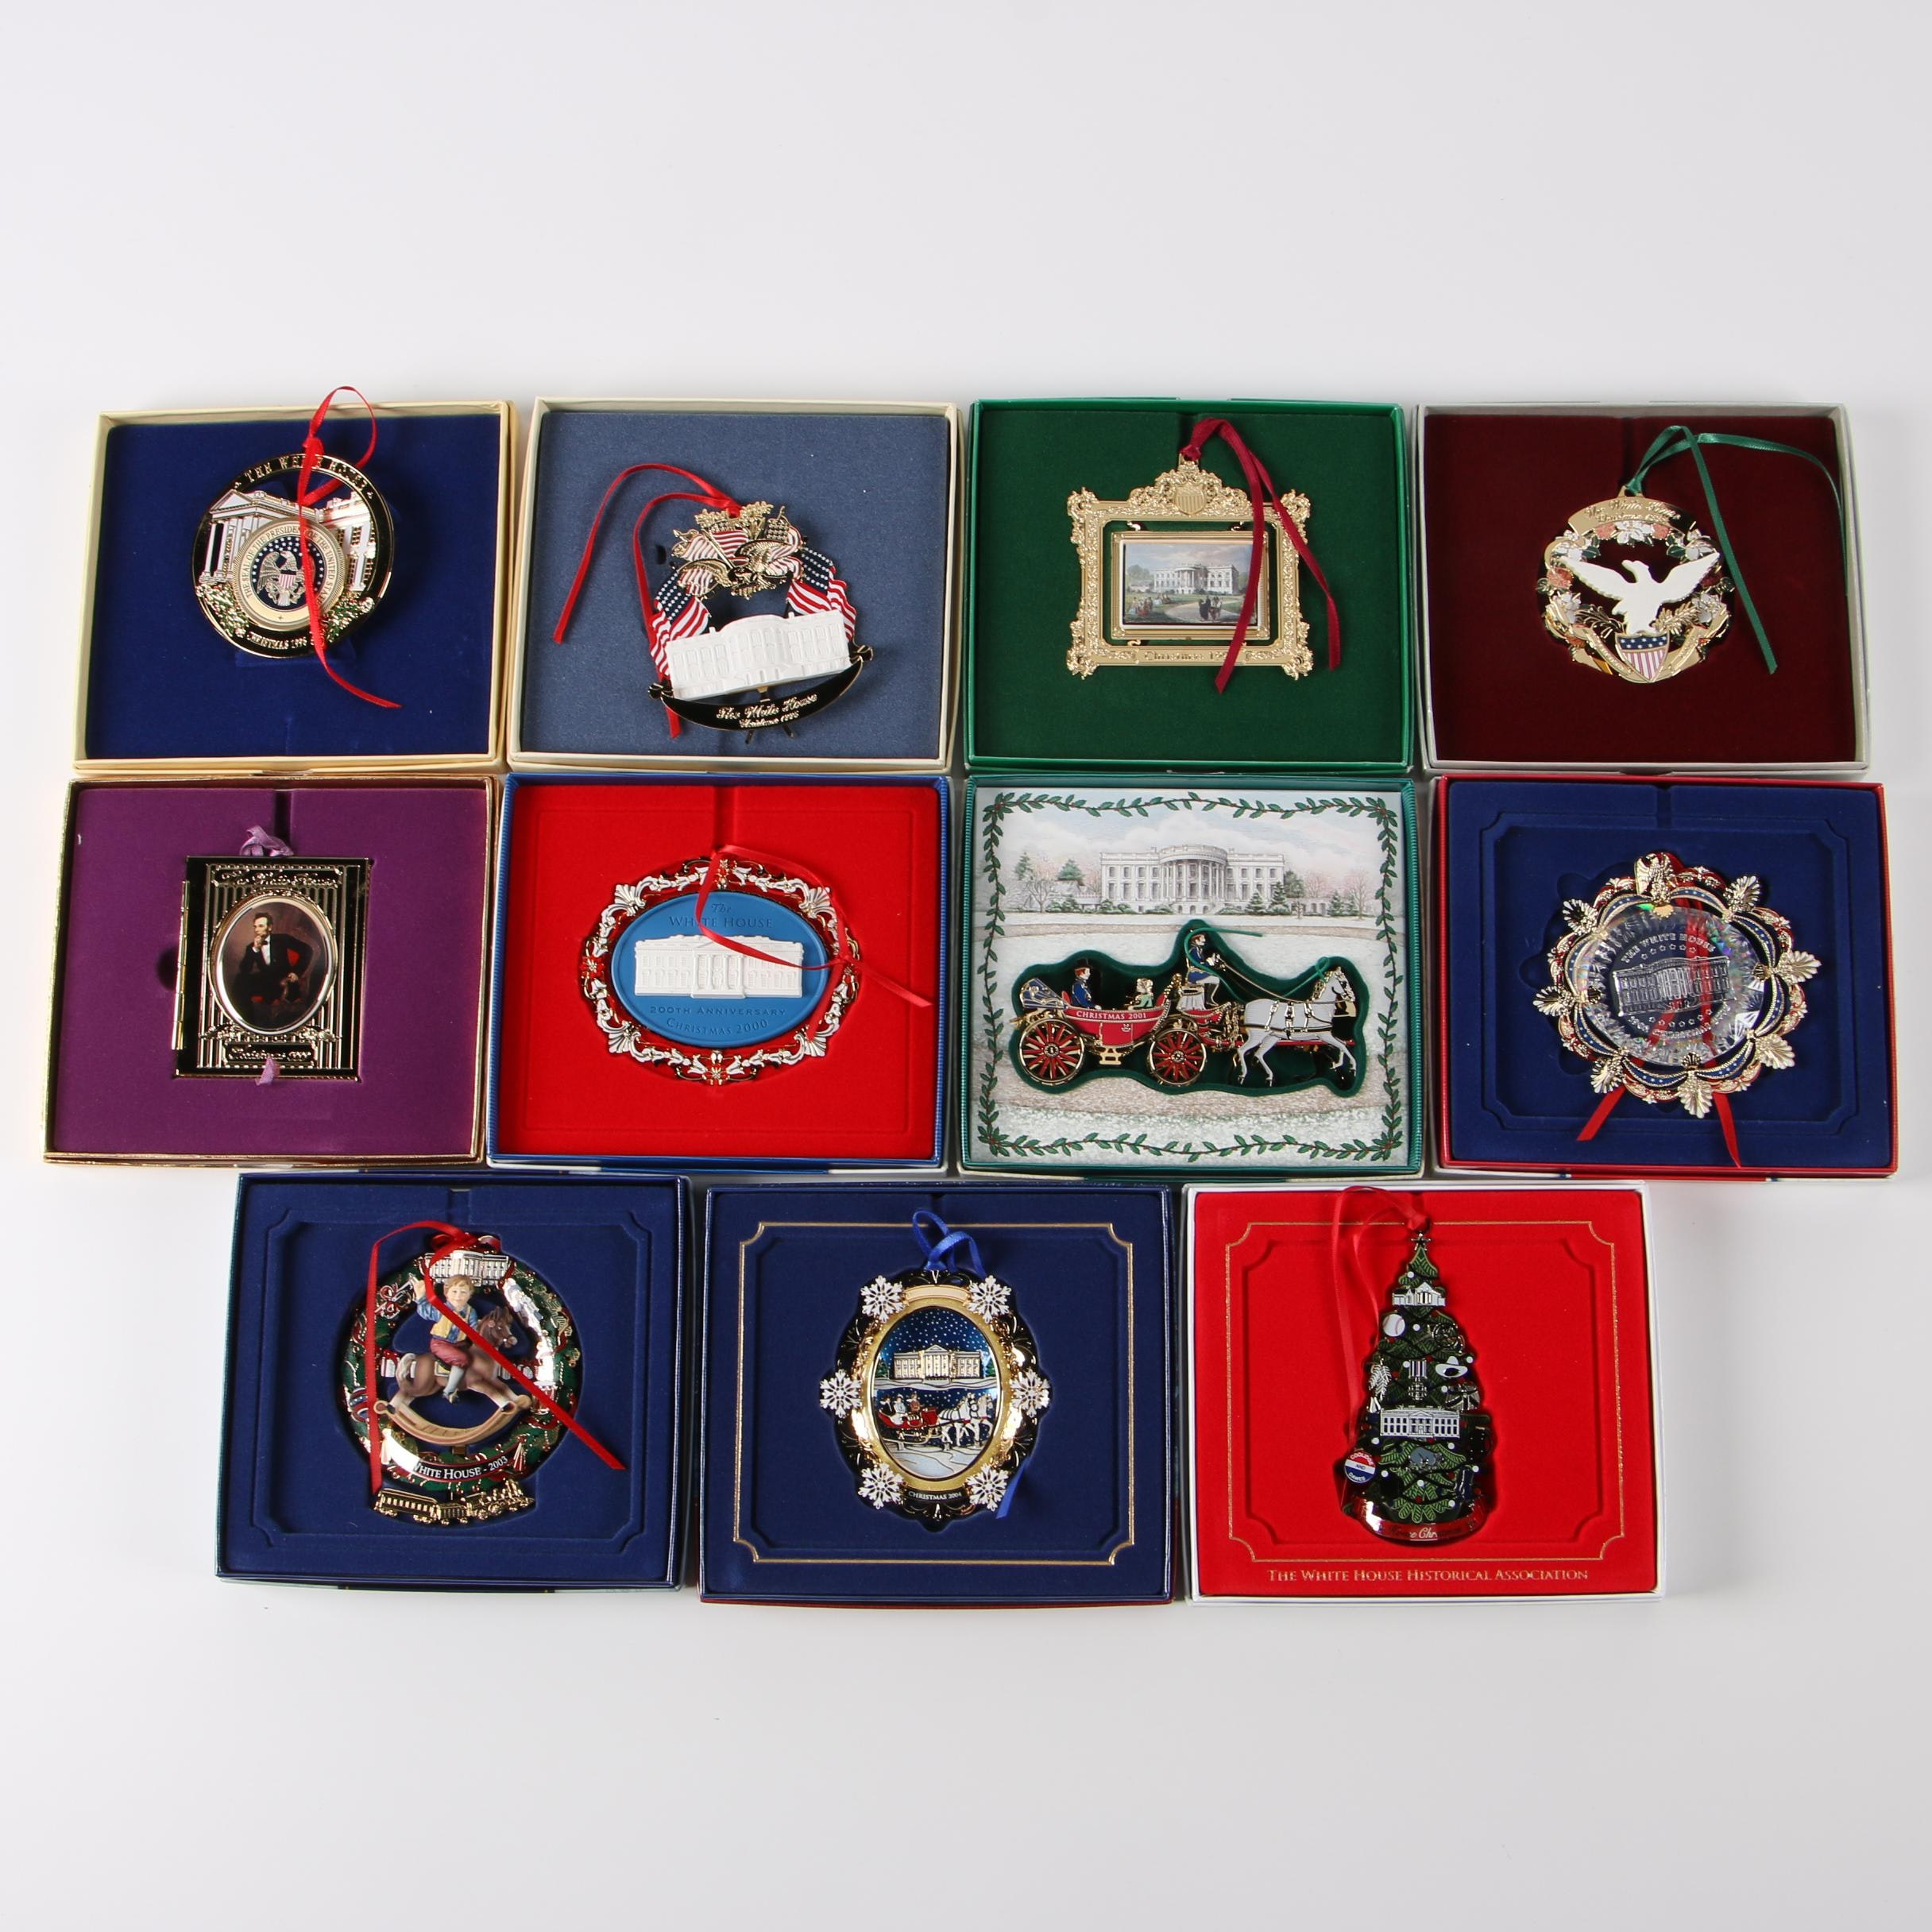 Annual White House Christmas Ornaments with 24K Gold, 1995 - 2004 and 2015